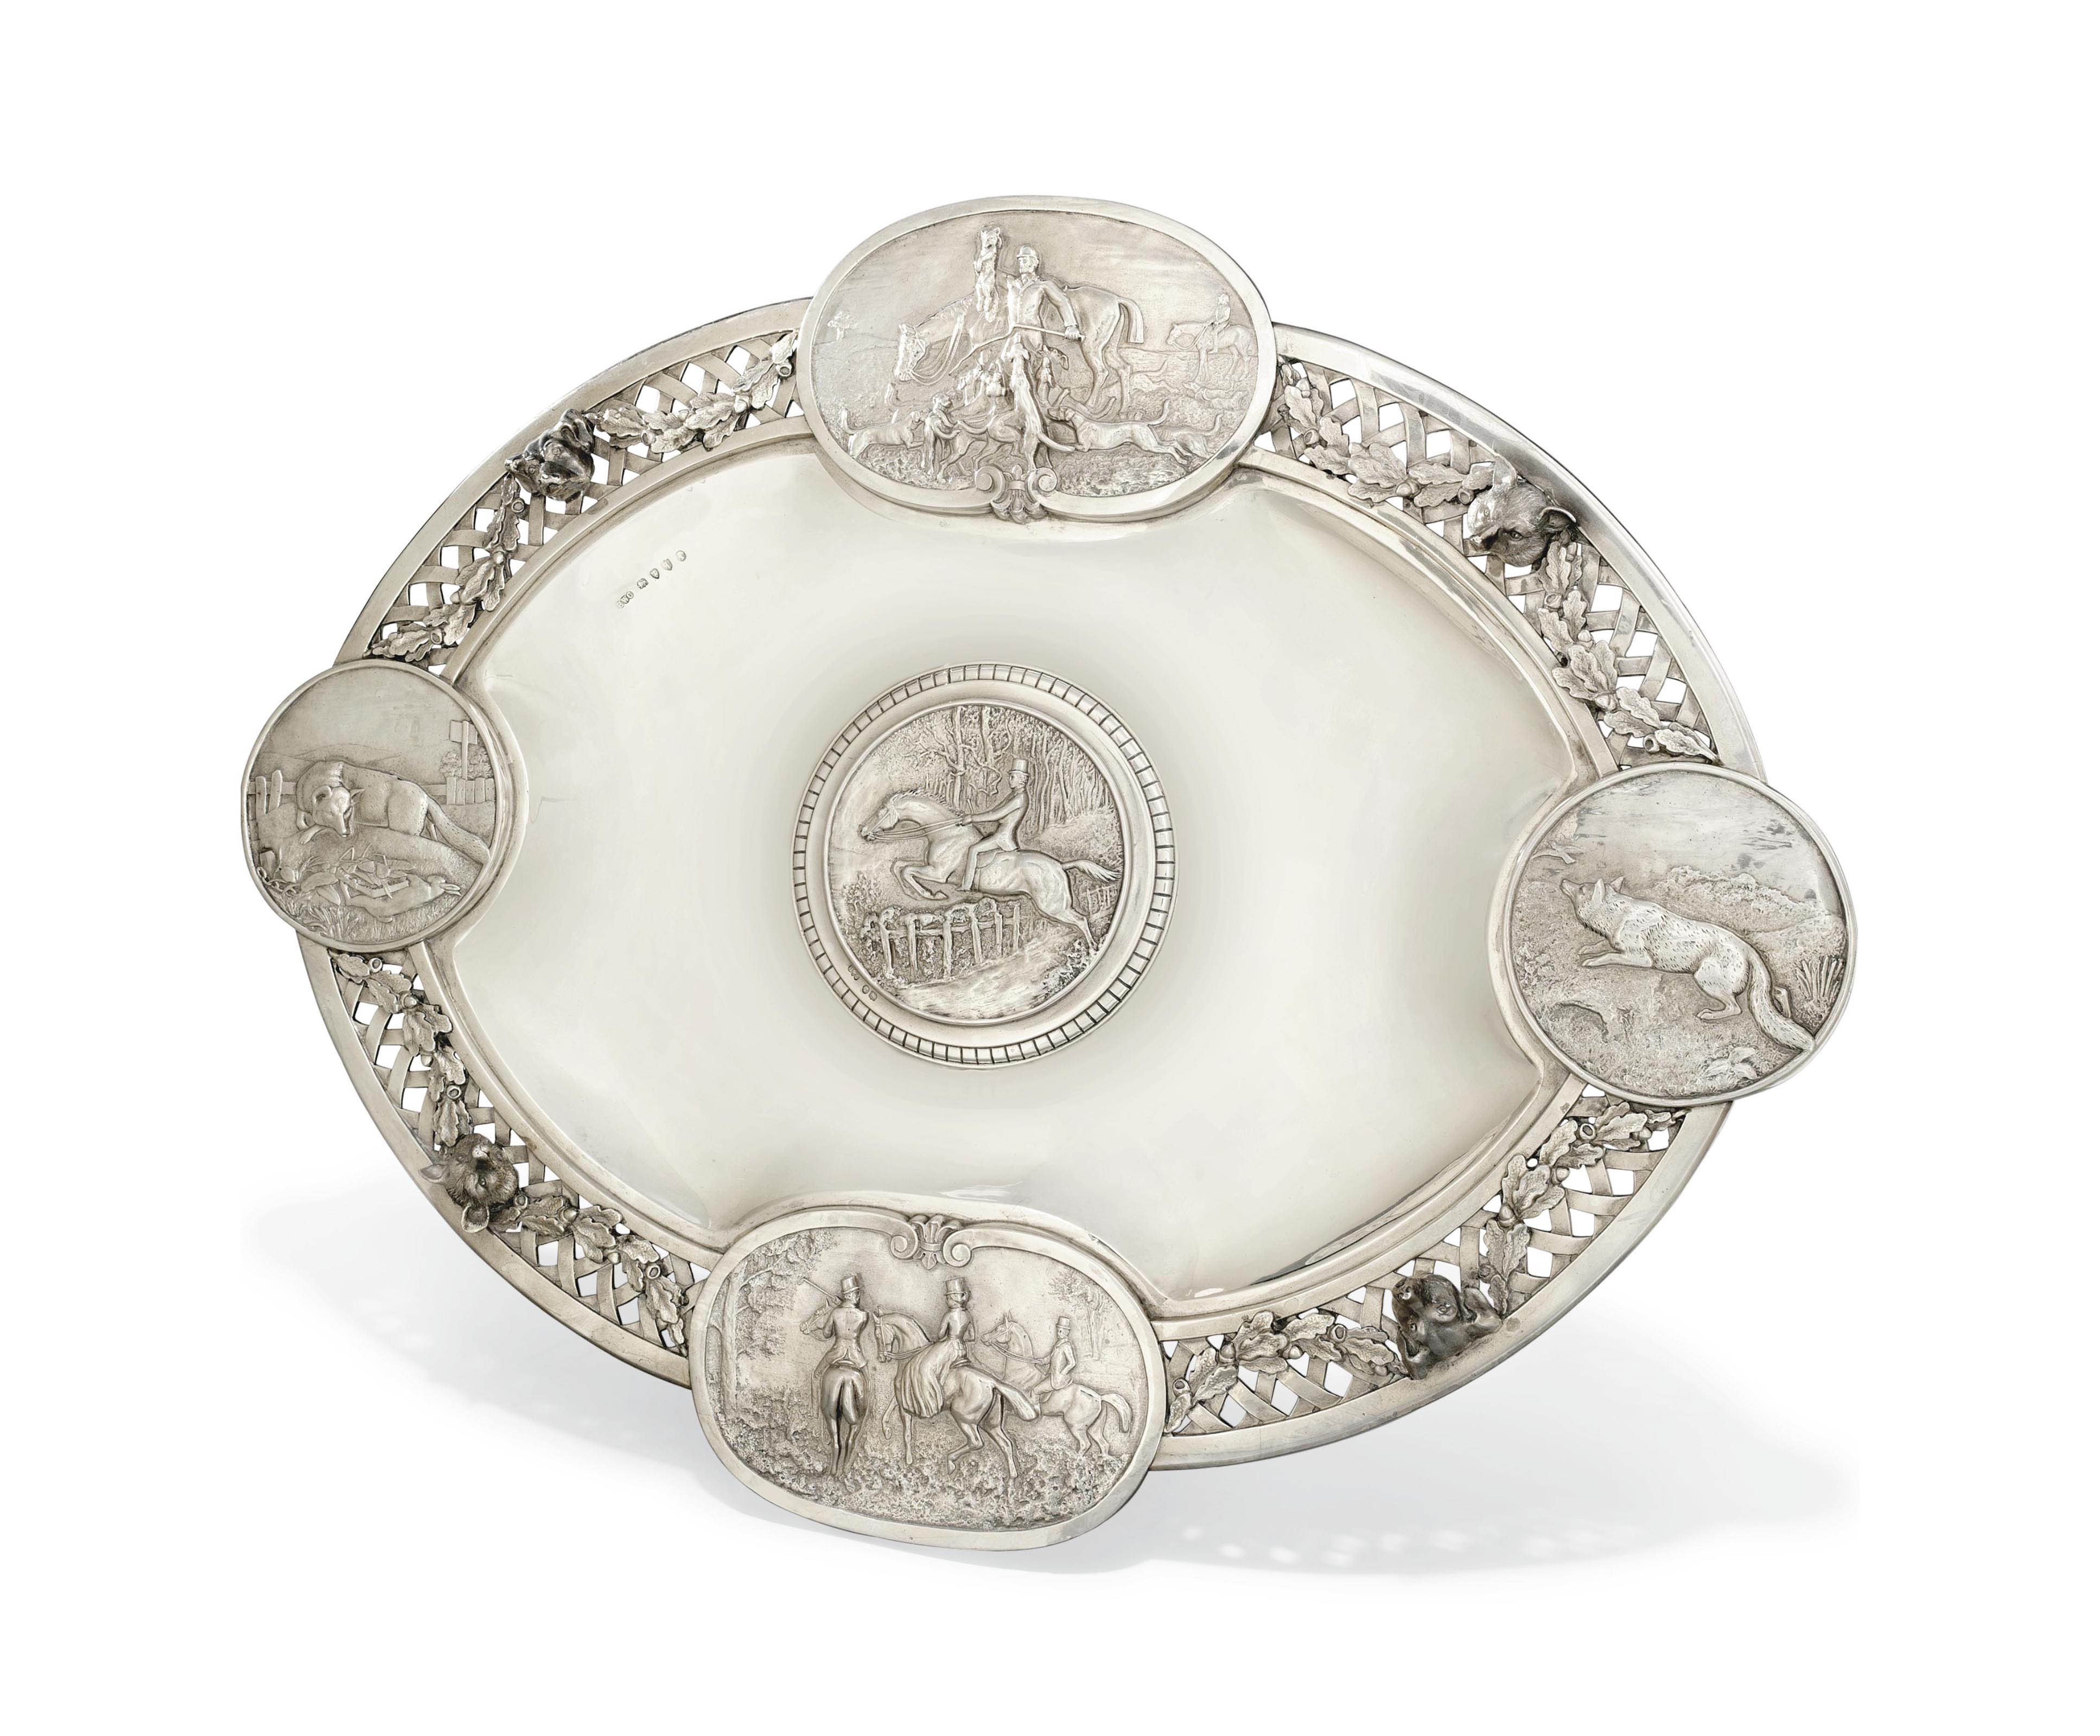 A VICTORIAN SILVER STAND OF HUNTING INTEREST